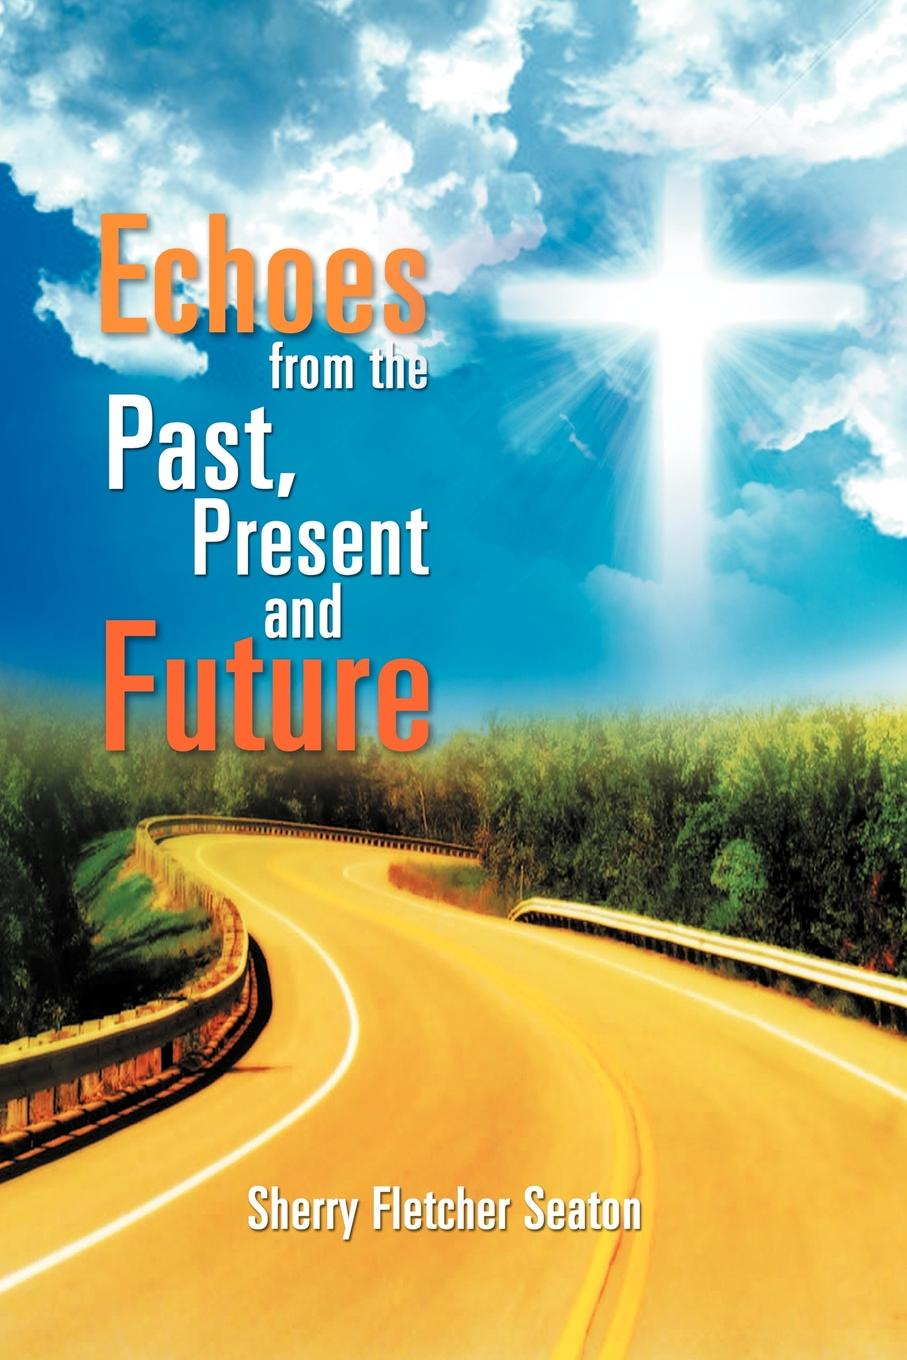 Sherry Fletcher Seaton Echoes from the Past, Present and Future anastasia novykh predictions of the future and truth about the past and the present